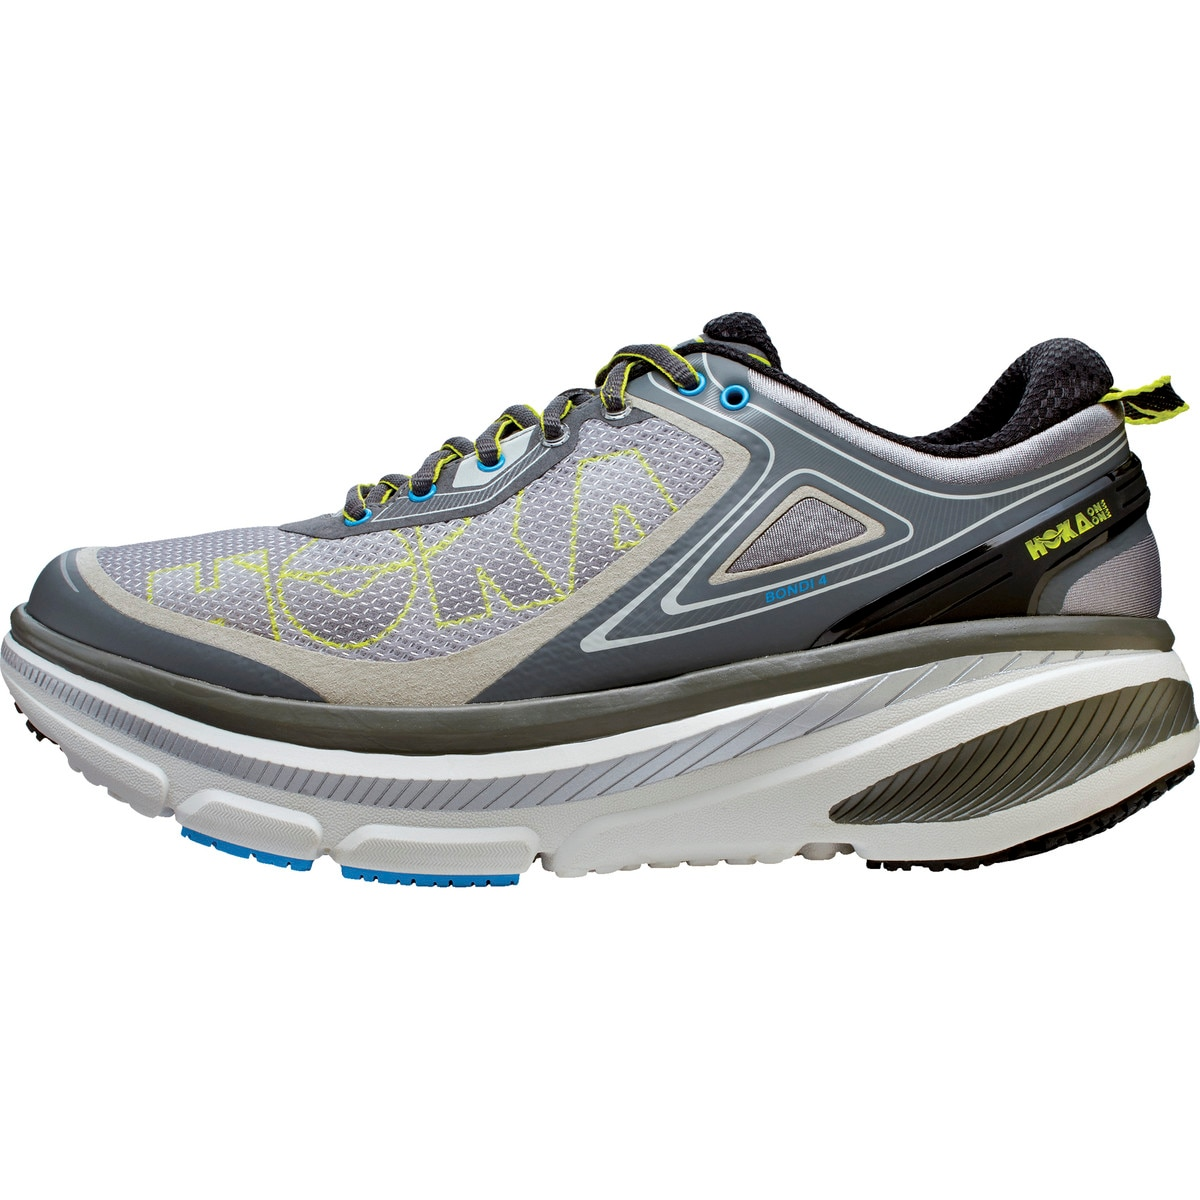 Mens Hoka Road Shoe Sale